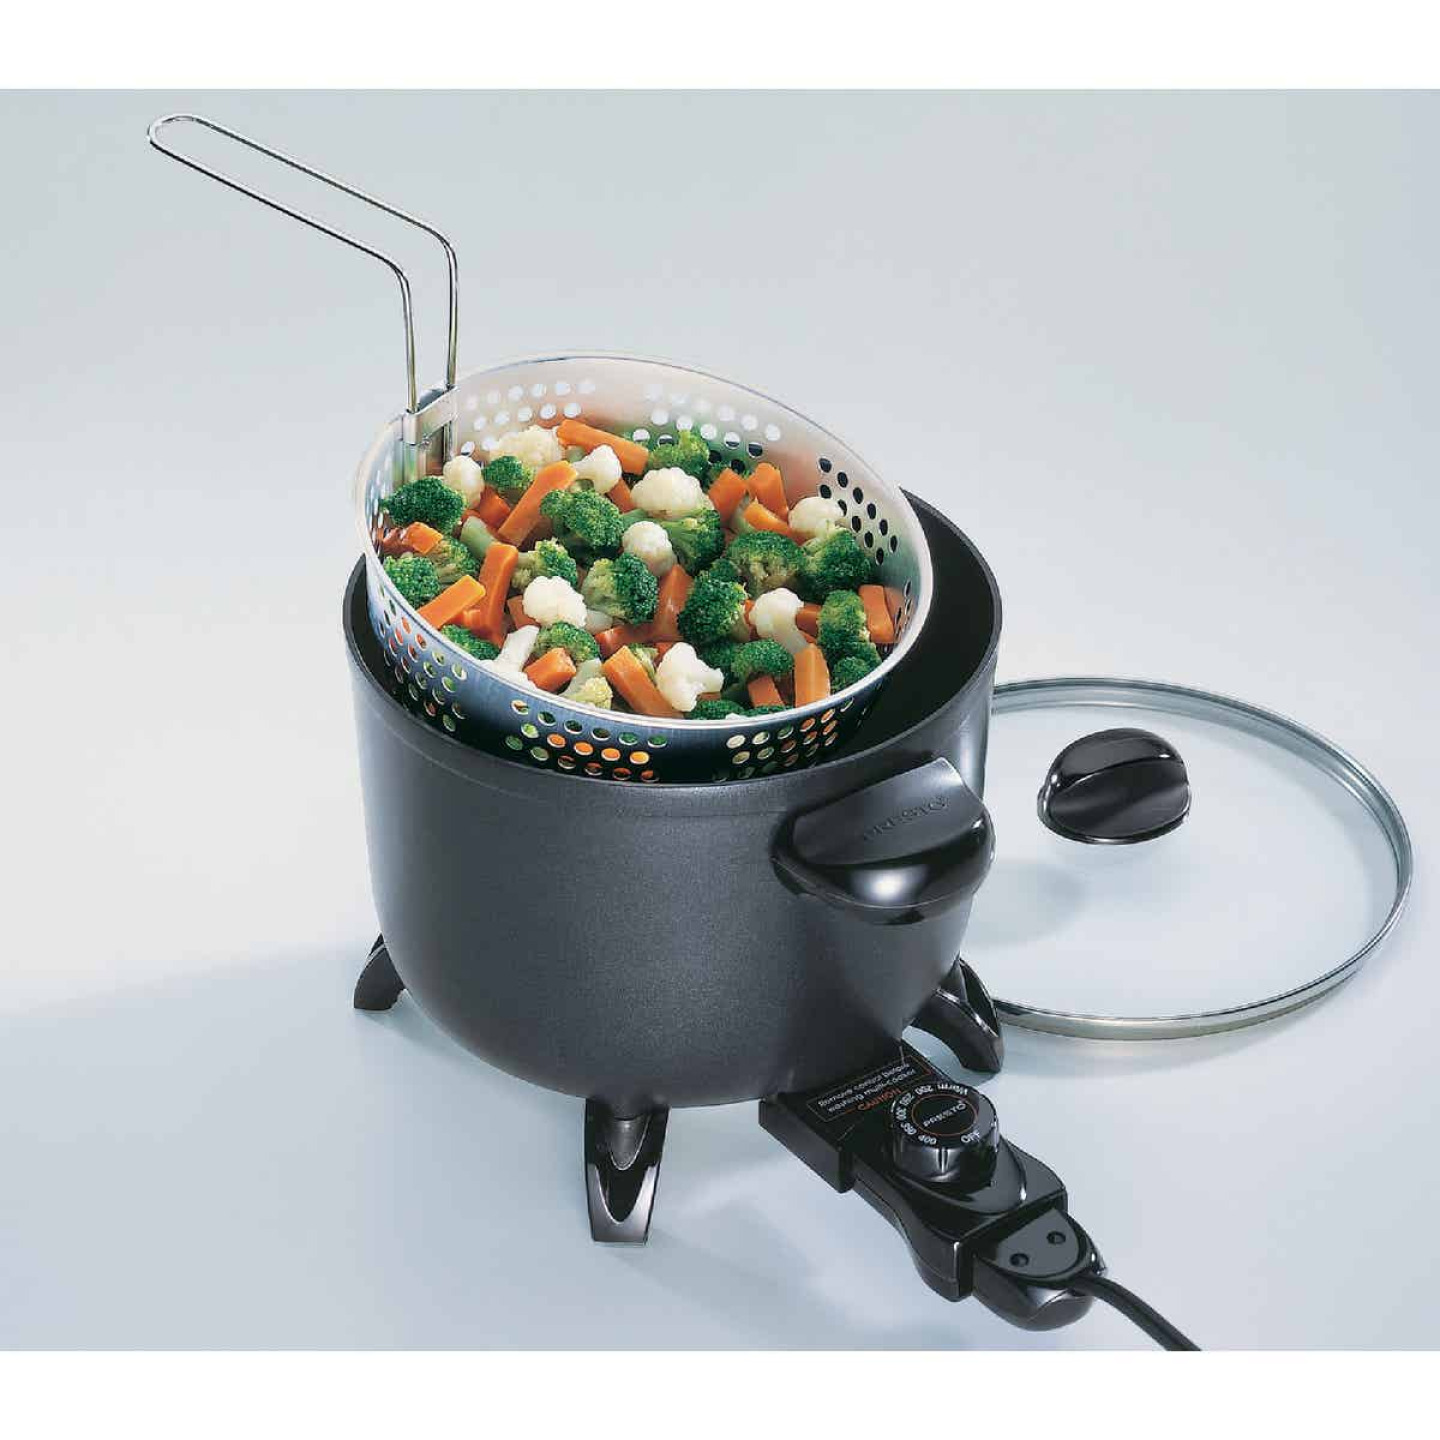 Presto 5 Qt. Kitchen Kettle Multi-Cooker Image 2